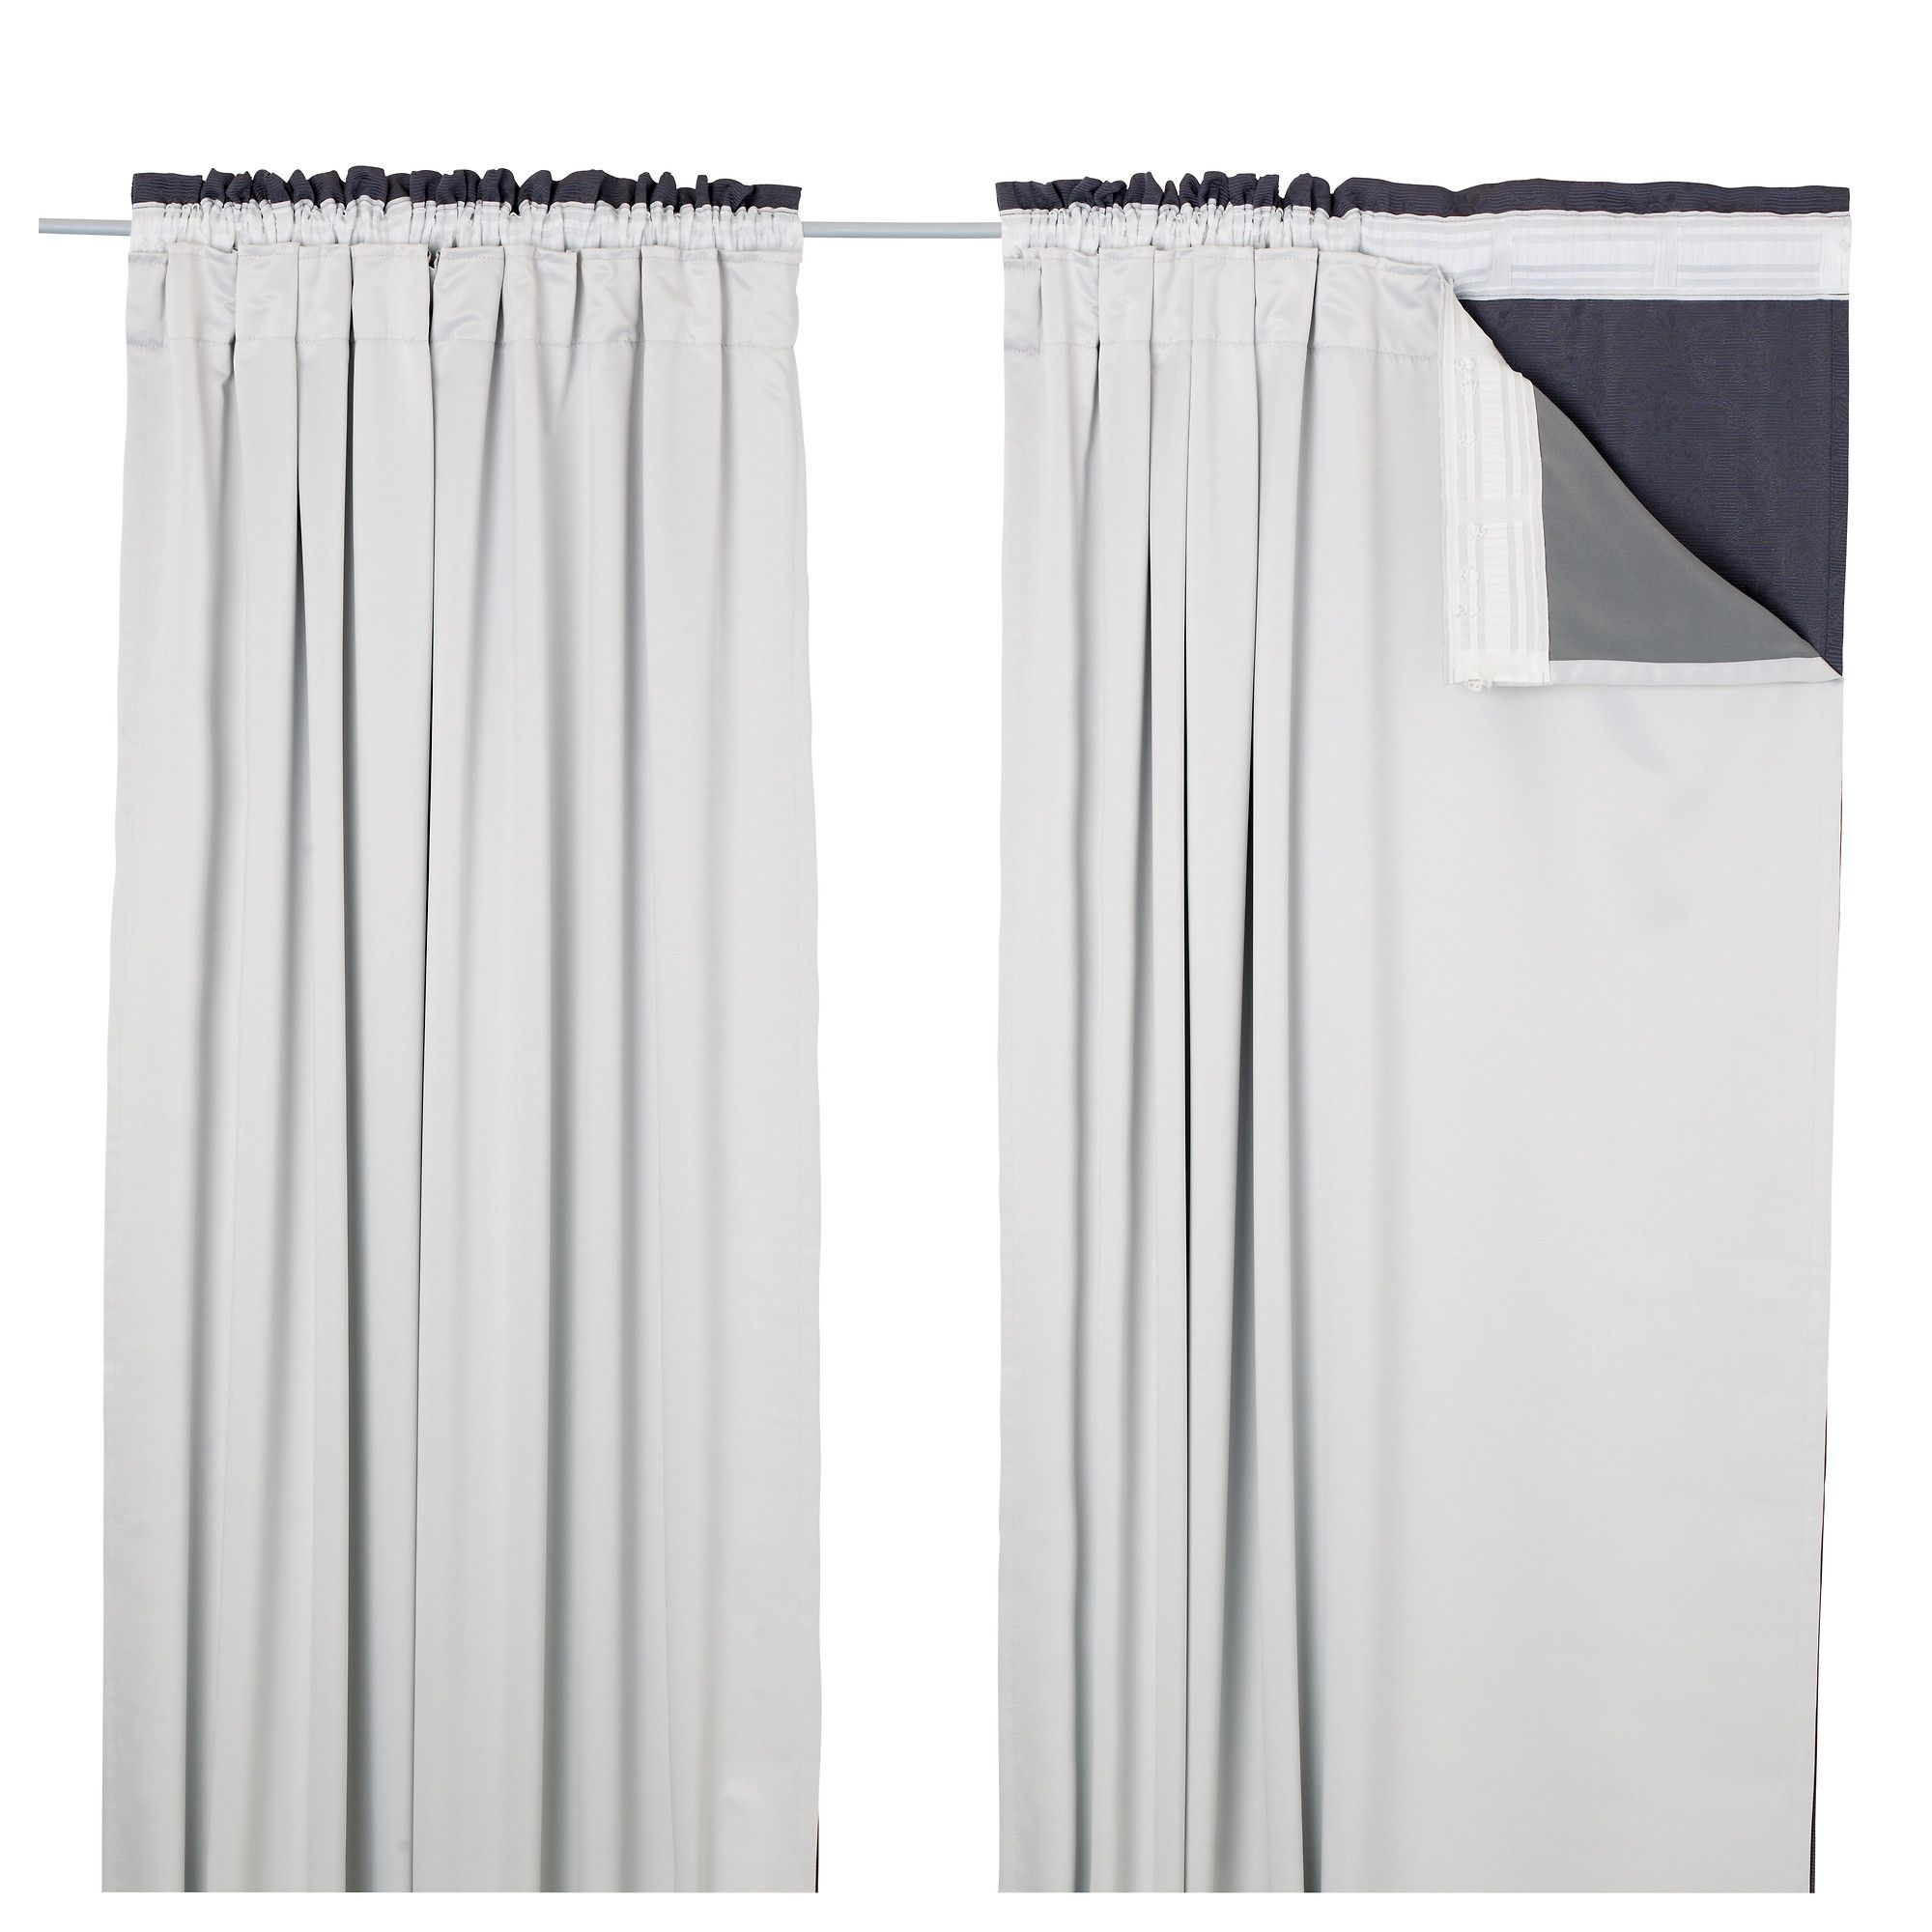 Ikea Us Furniture And Home Furnishings Curtains With Blinds Ikea Curtains Curtains